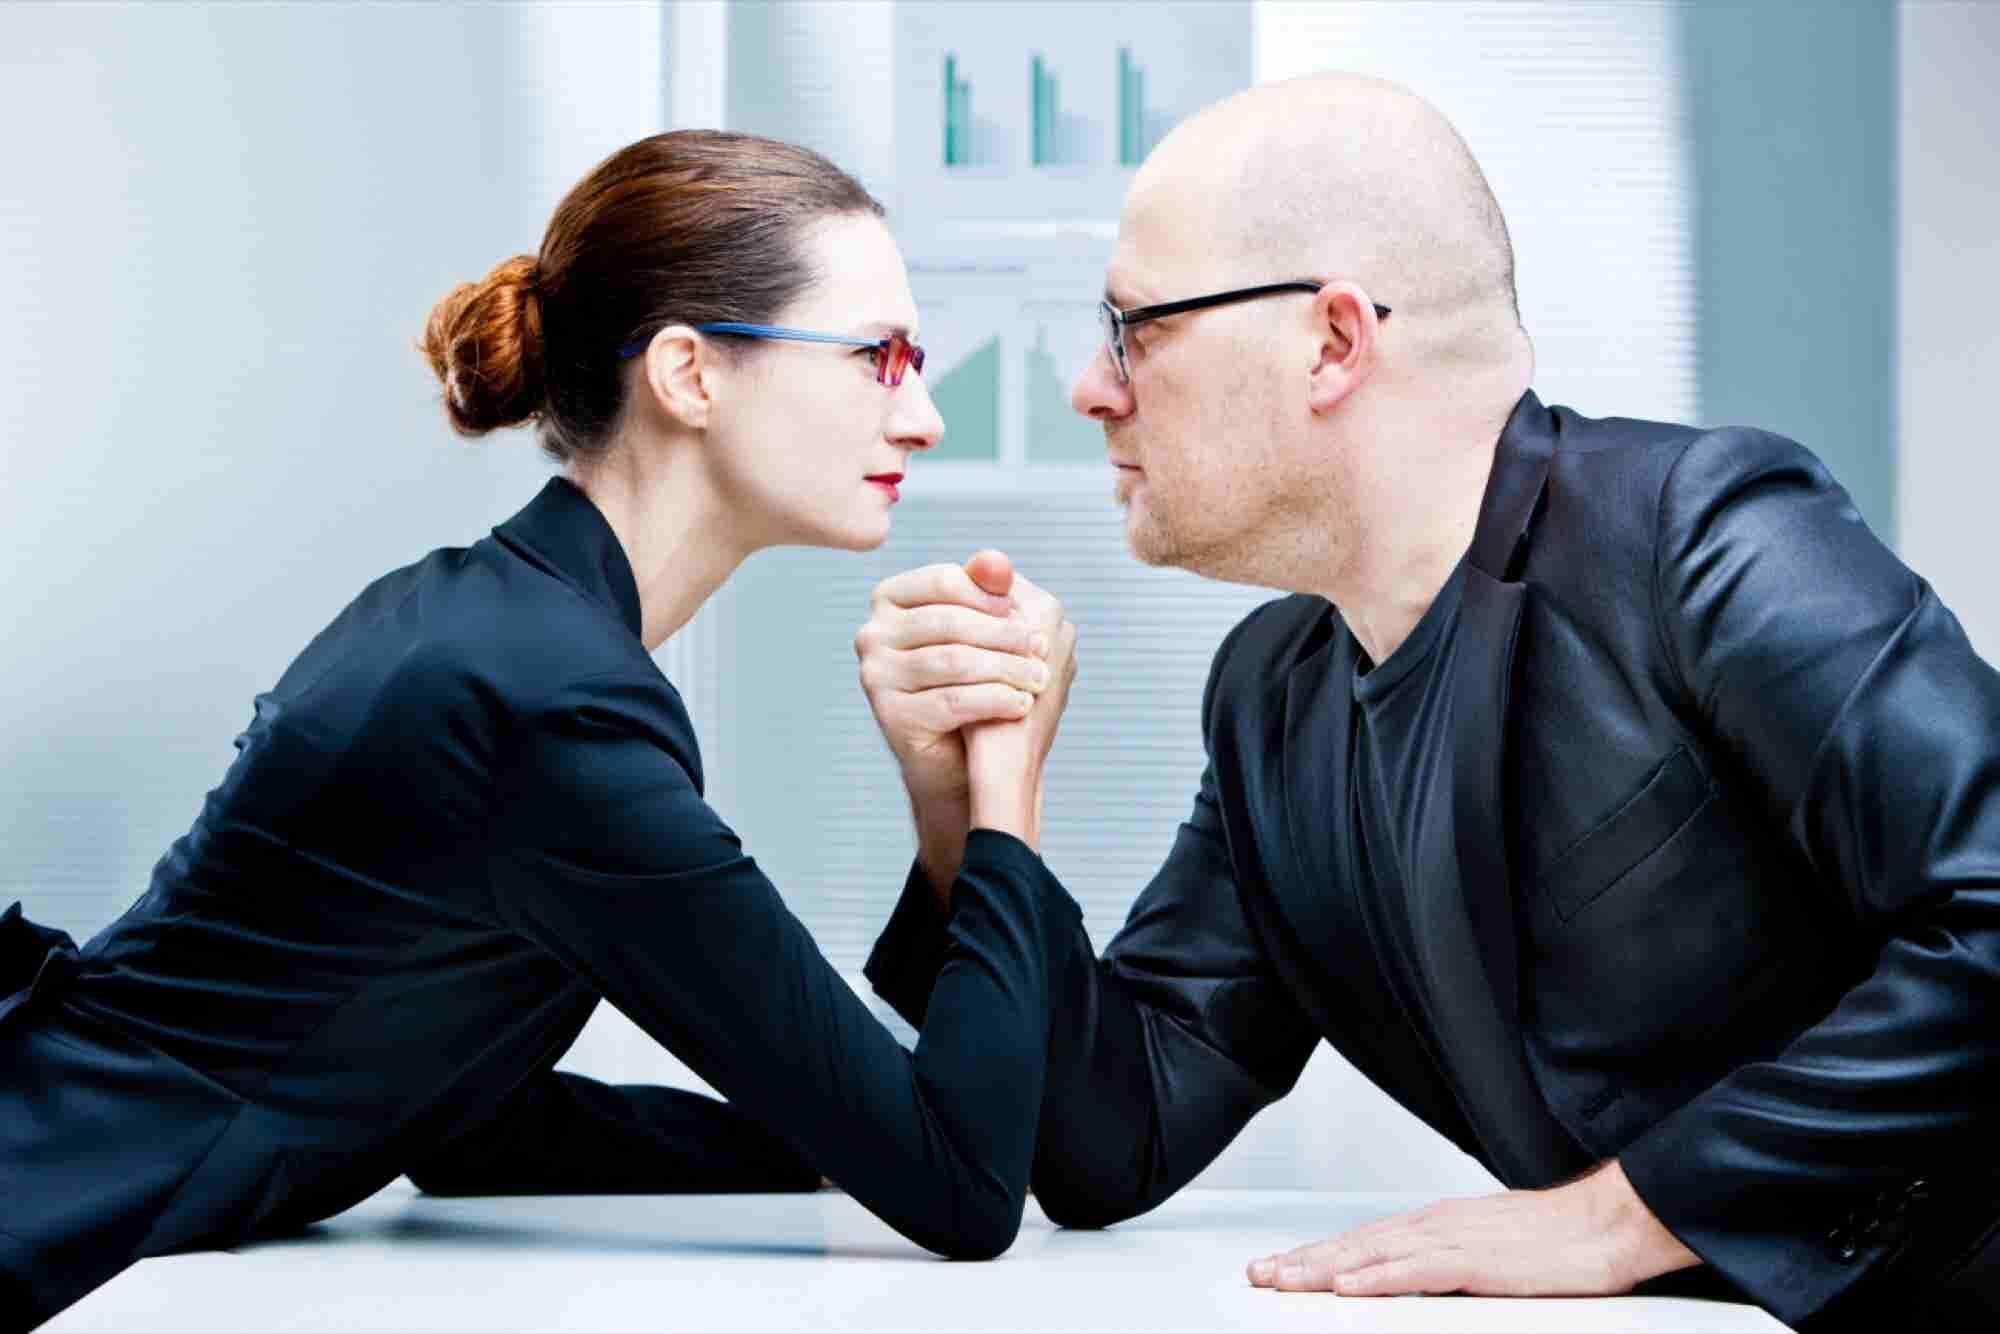 35 Masterful Quotes to Inspire Healthier Workplace Relationships